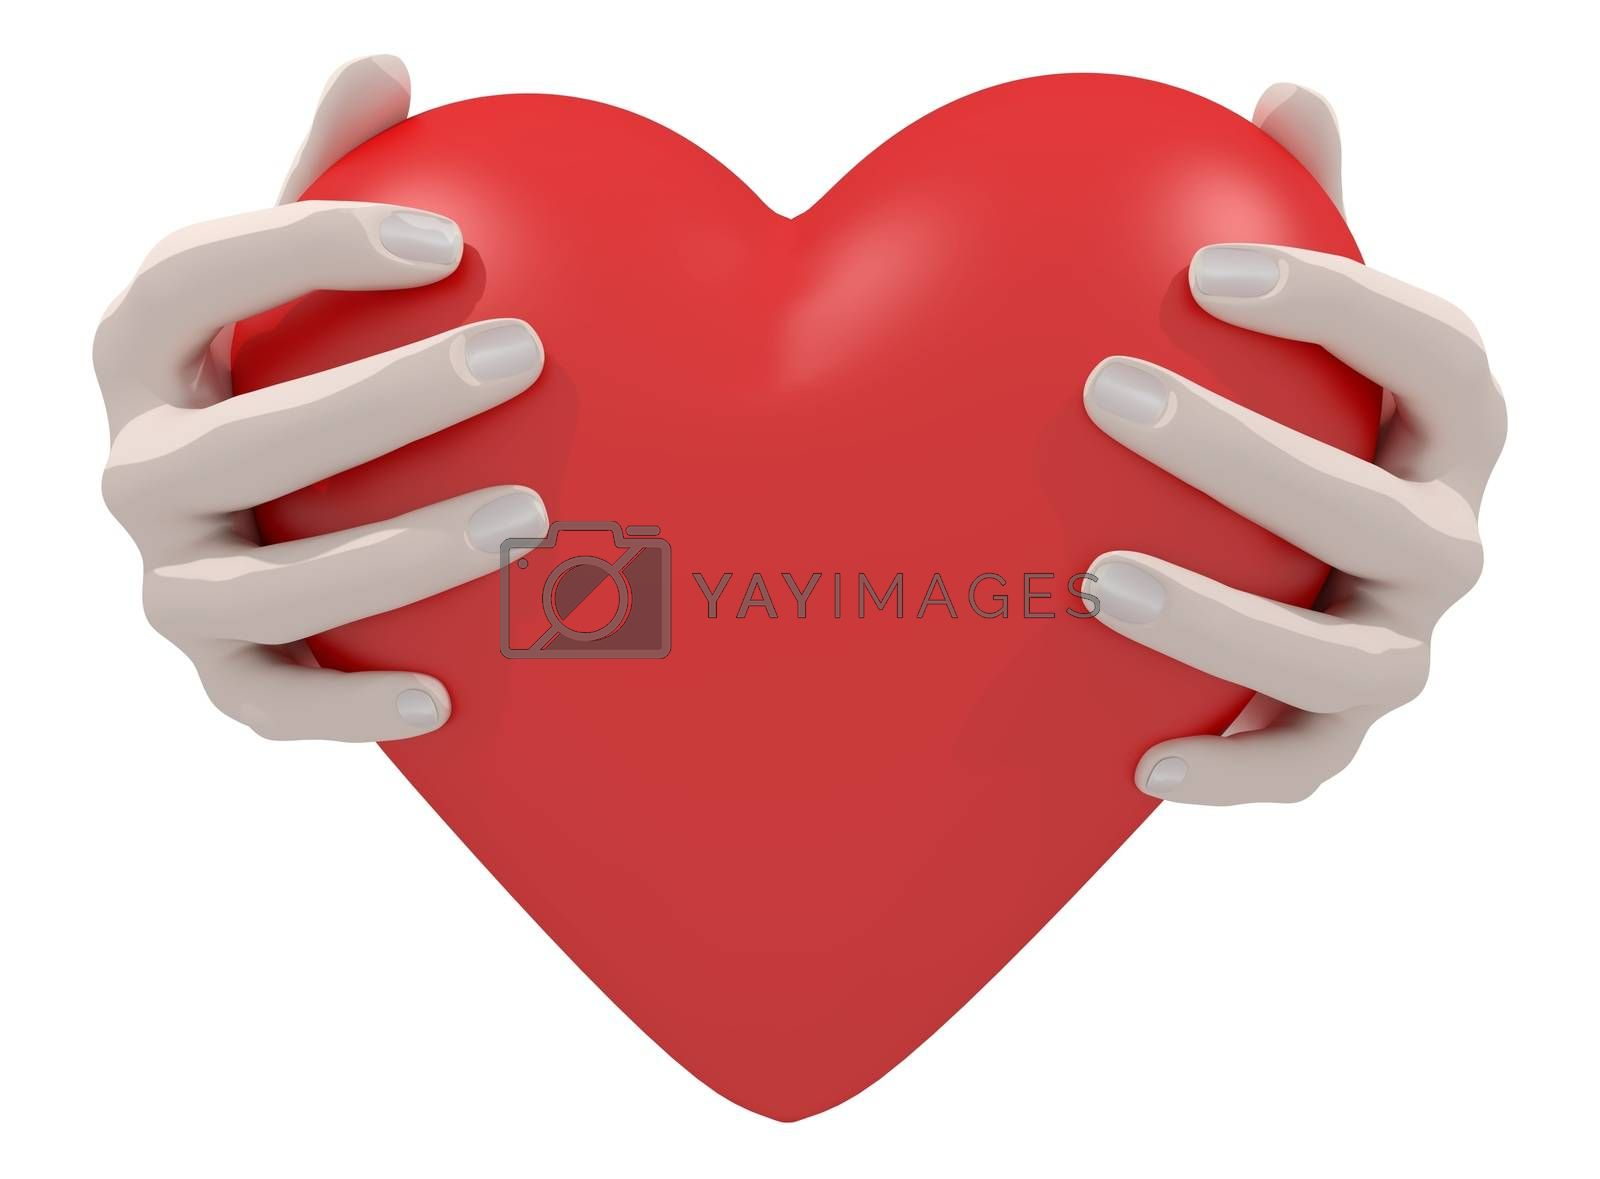 Illustration of a pair of hands holding a heart